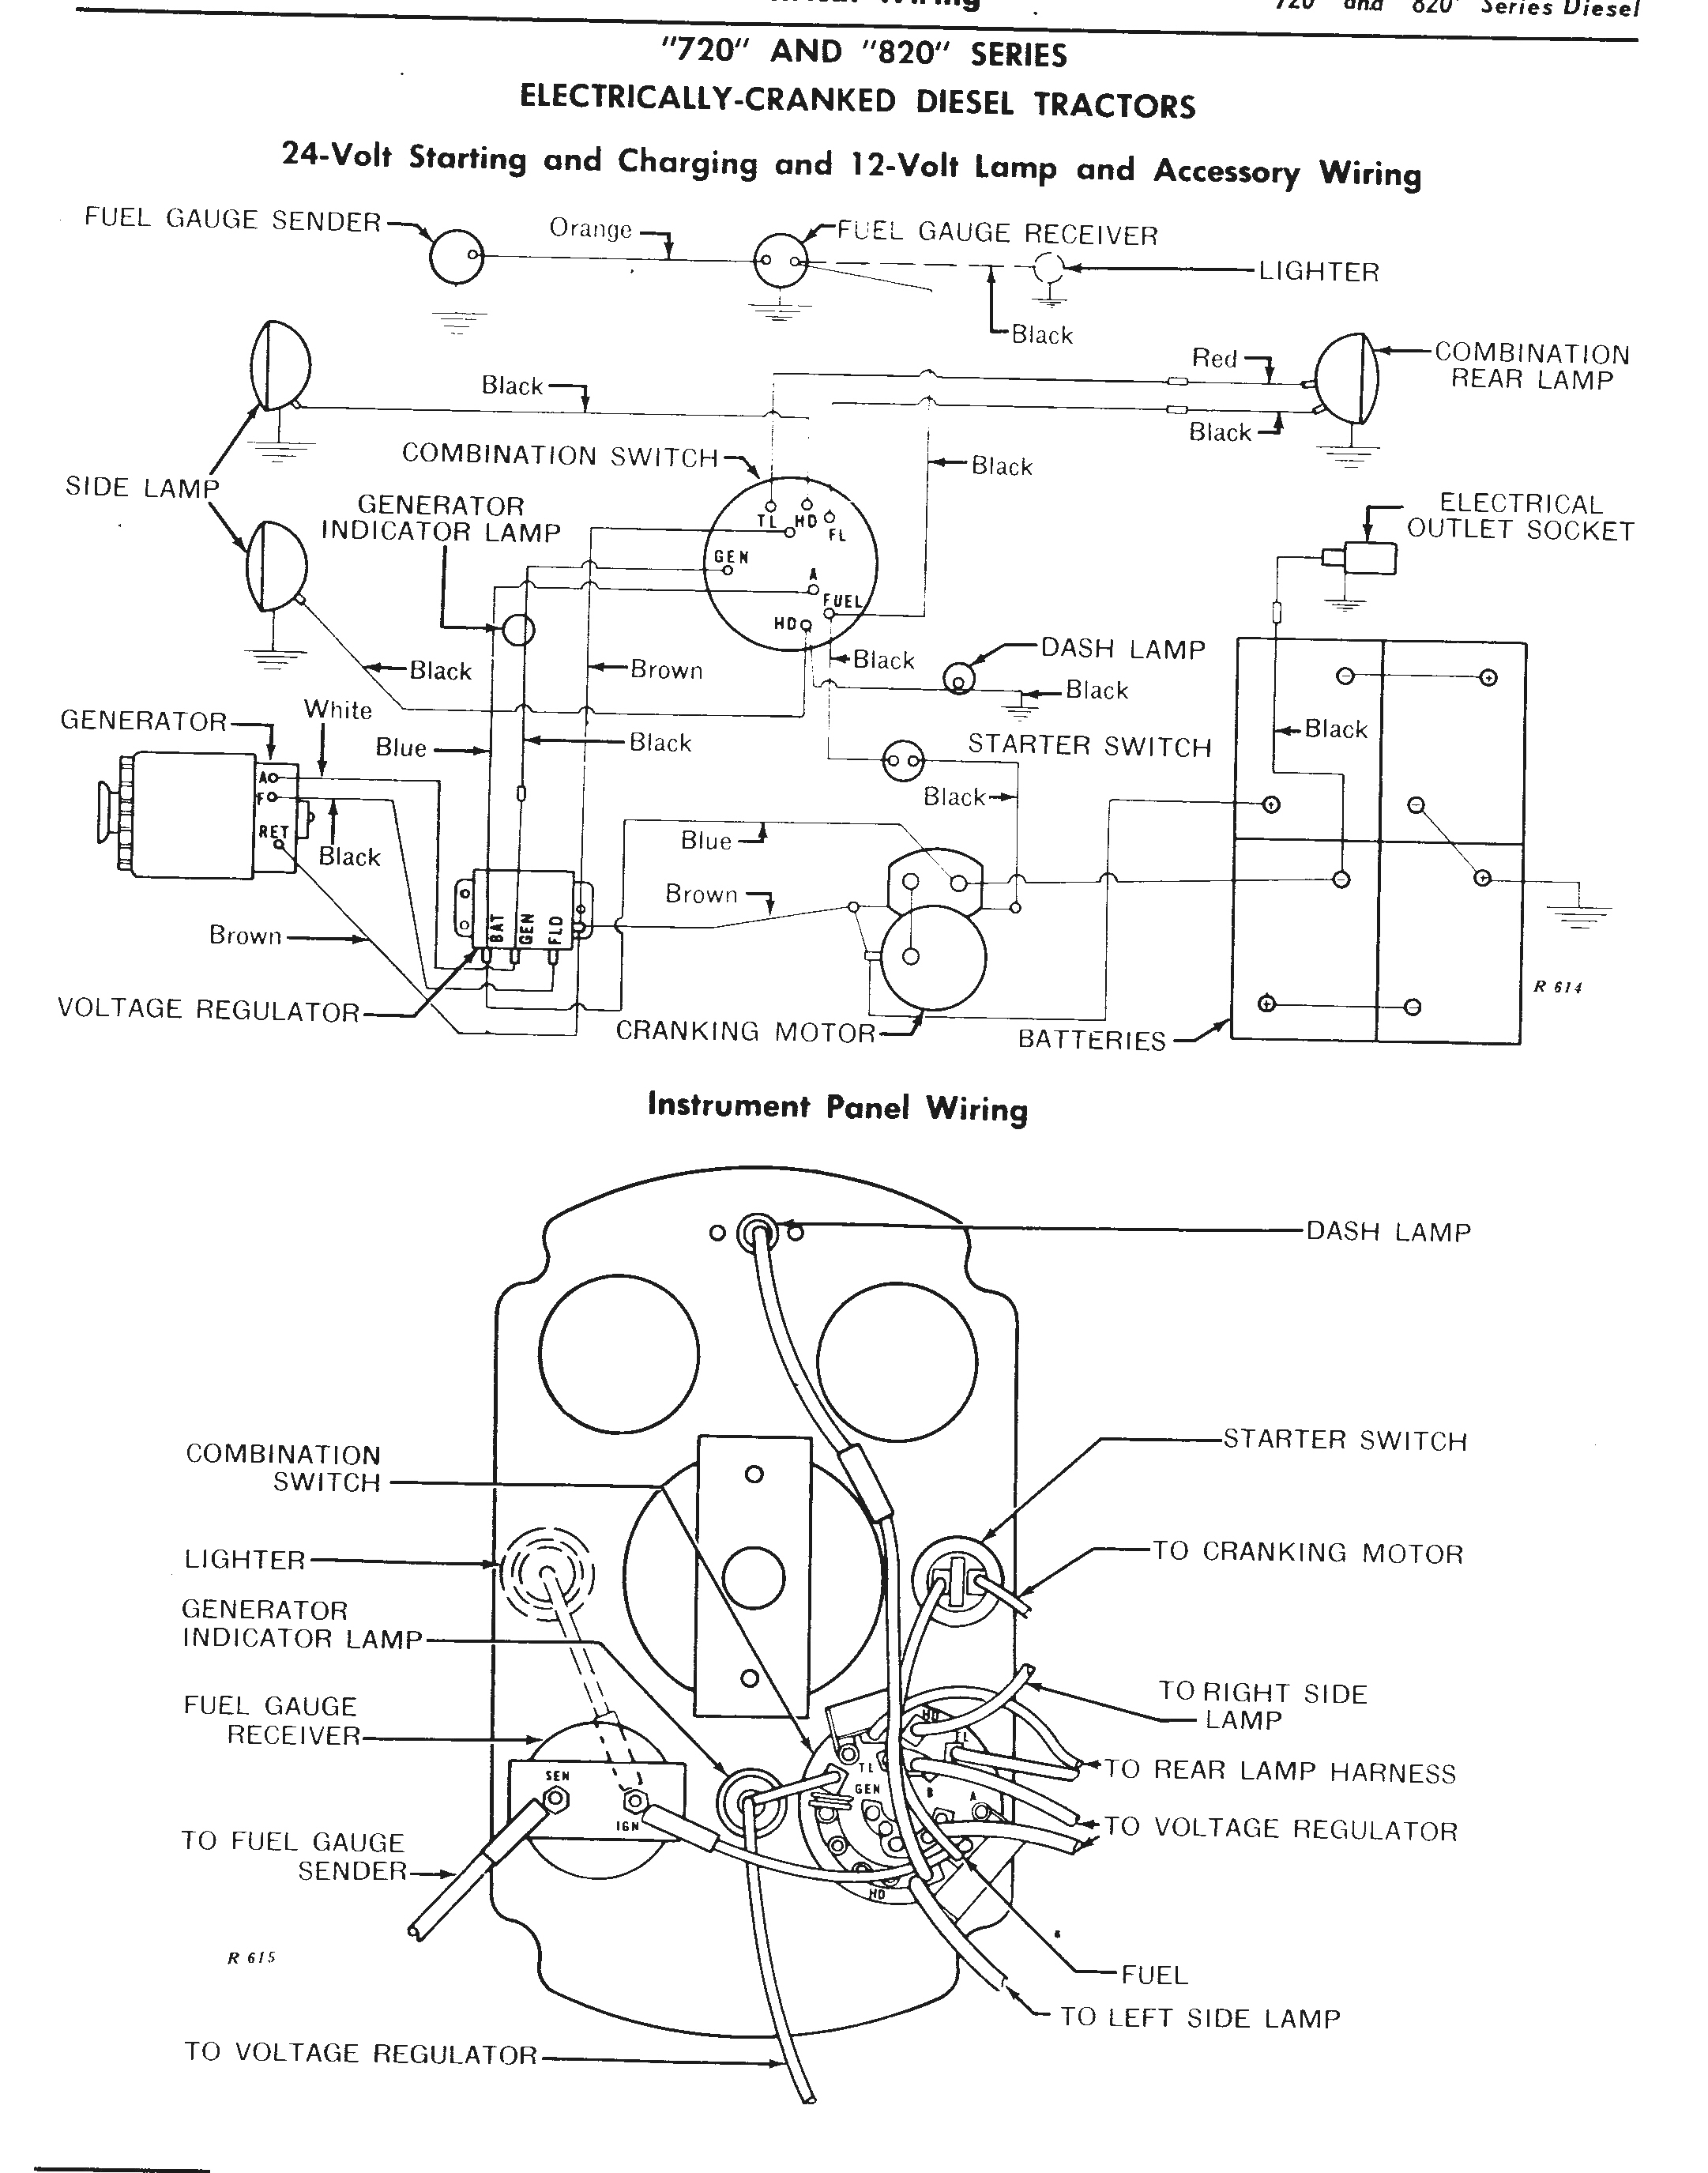 The John Deere 24 Volt Electrical System Explained | John Deere 3020 24 Volt Wiring Diagram |  | Pet Care Tips